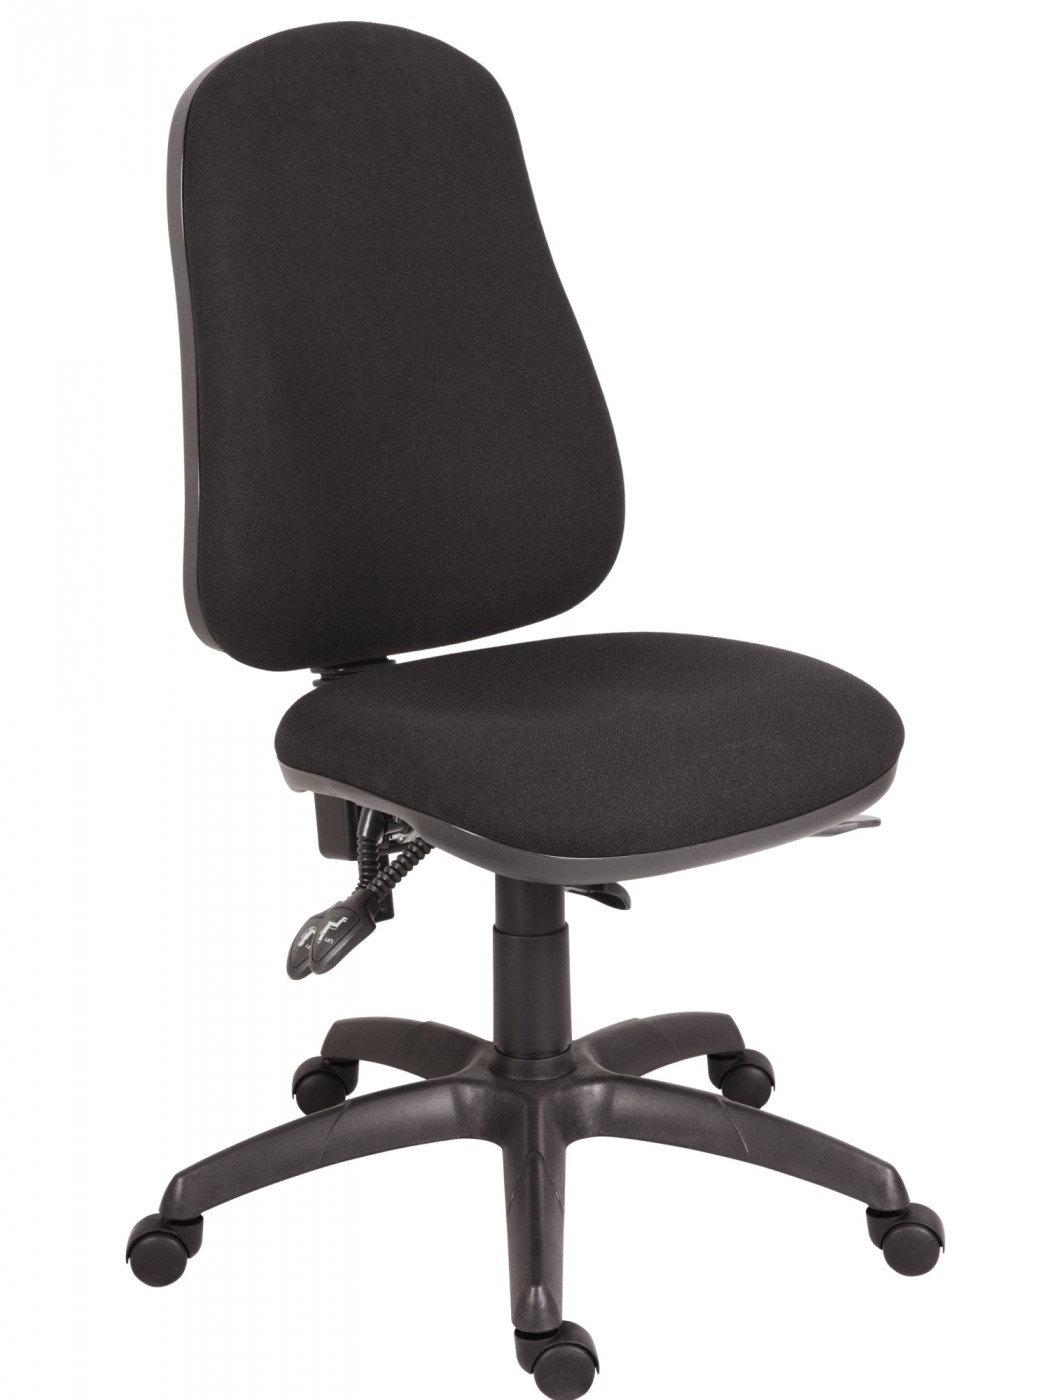 comfort office chair. Ergo Comfort Executive Operator Chair 9500BLK - Enlarged View Office L